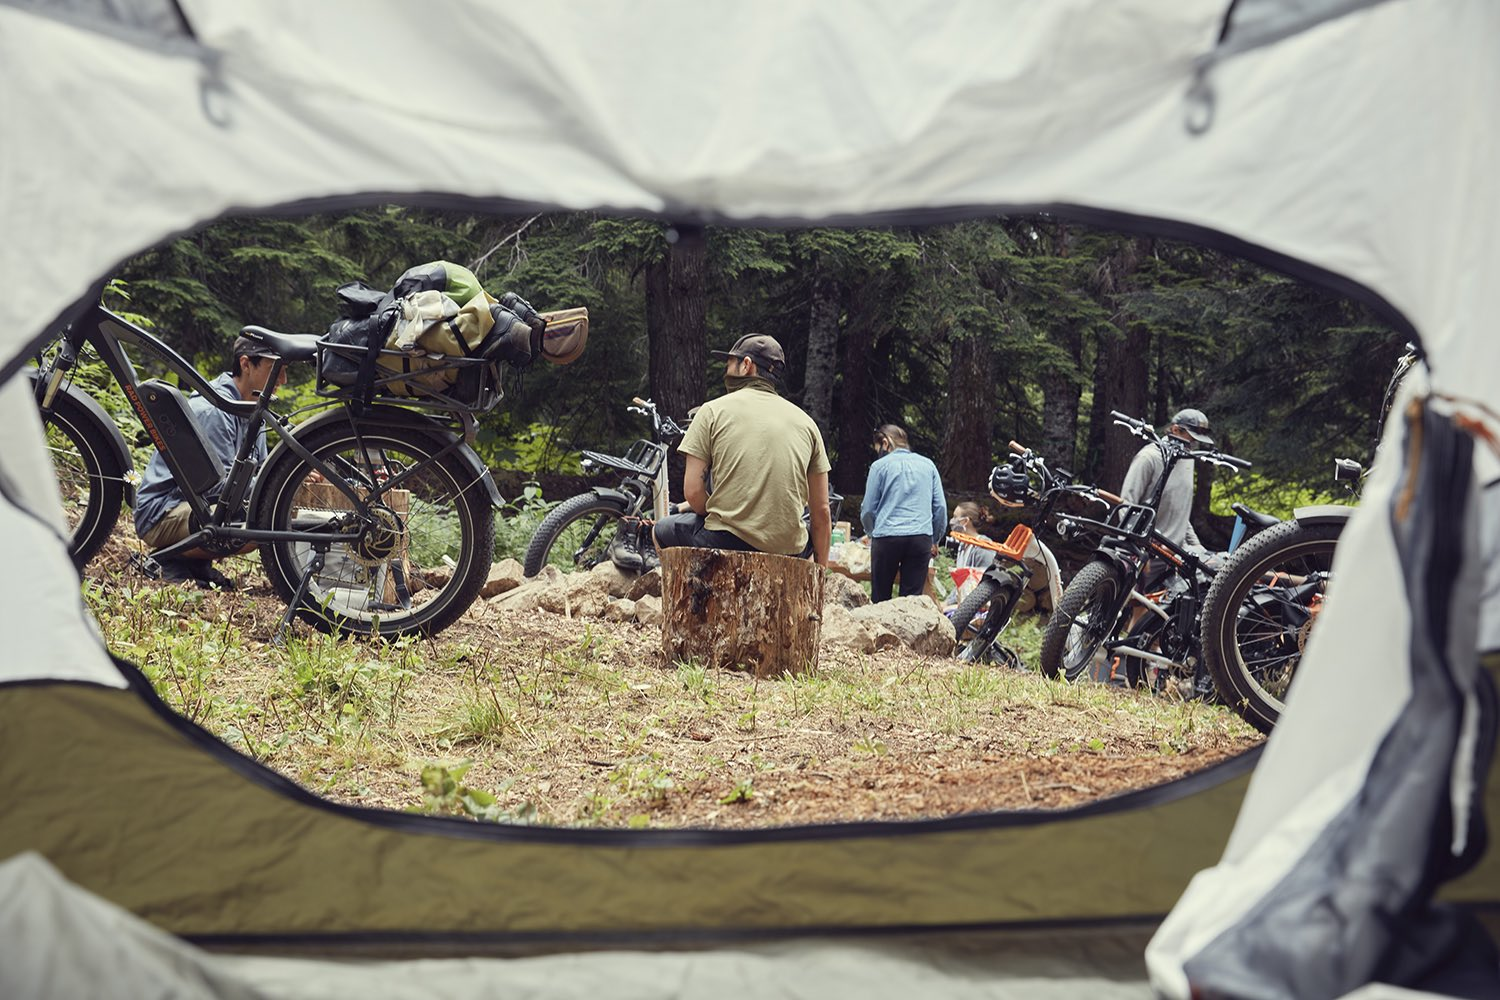 Looking outside a tent, we can see several people camping with their ebikes from Rad Power Bikes.